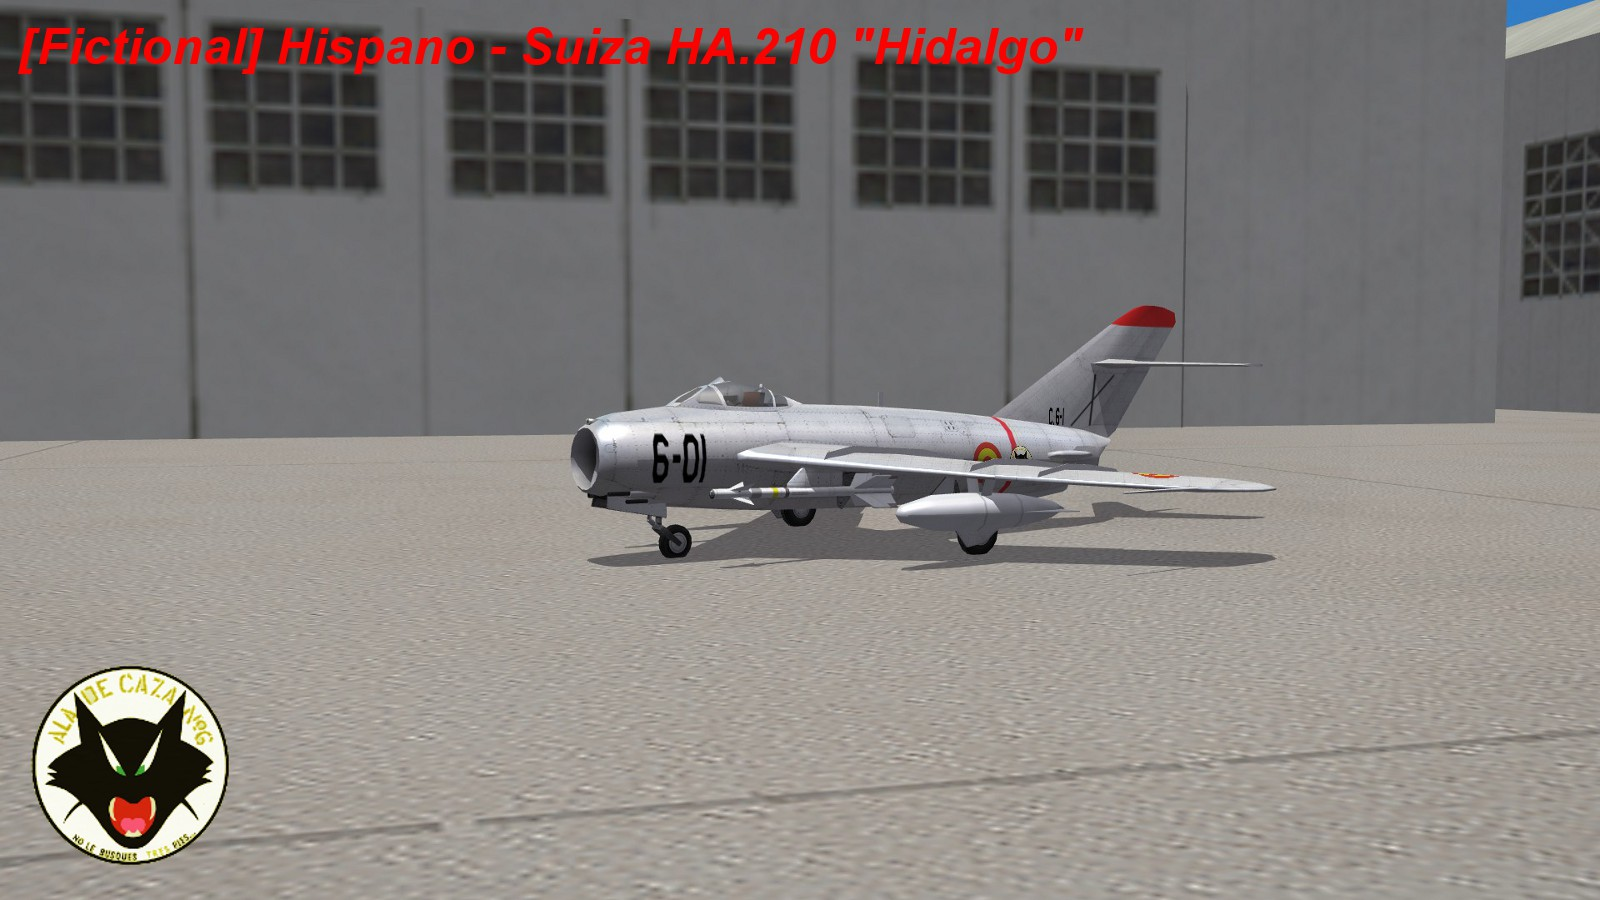 [Fictional] Hispano-Suiza HA.210 Hidalgo